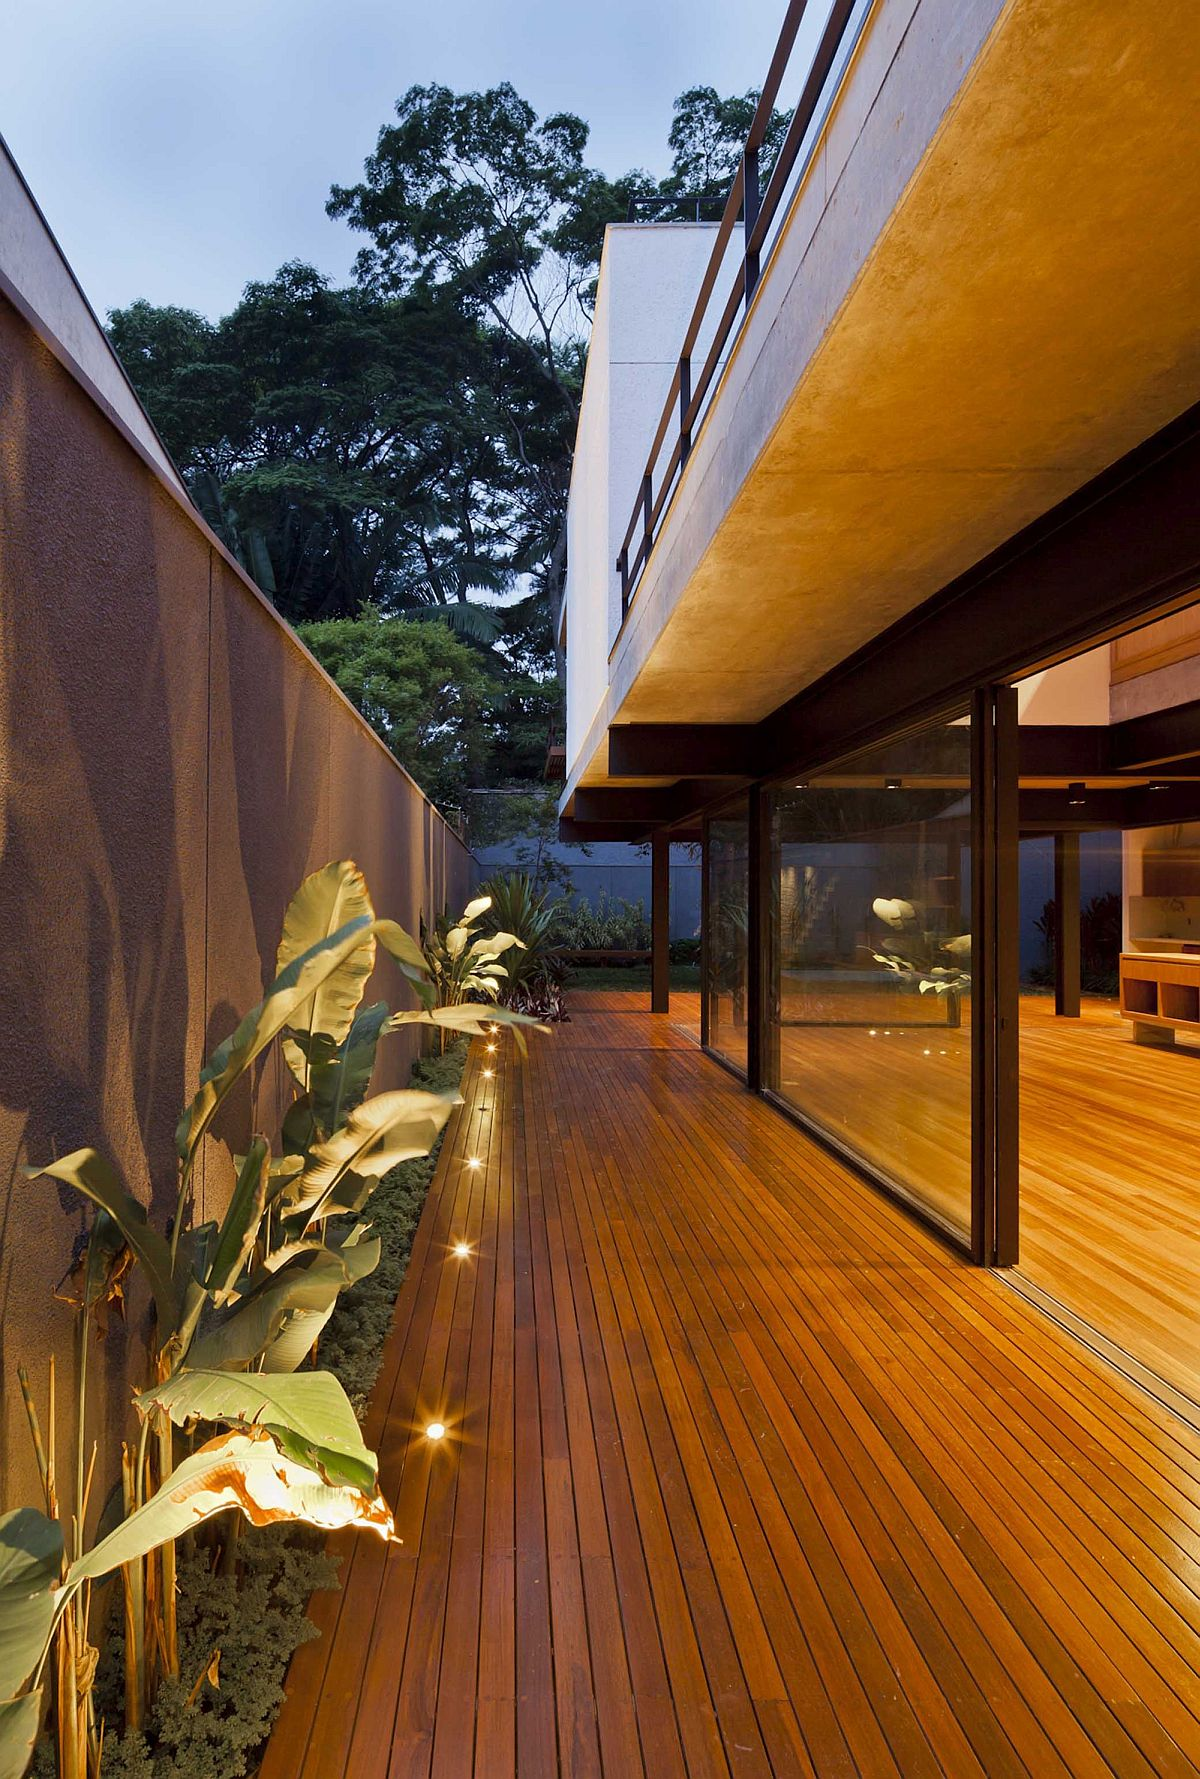 In-ground-lighting-for-the-wooden-deck-outside